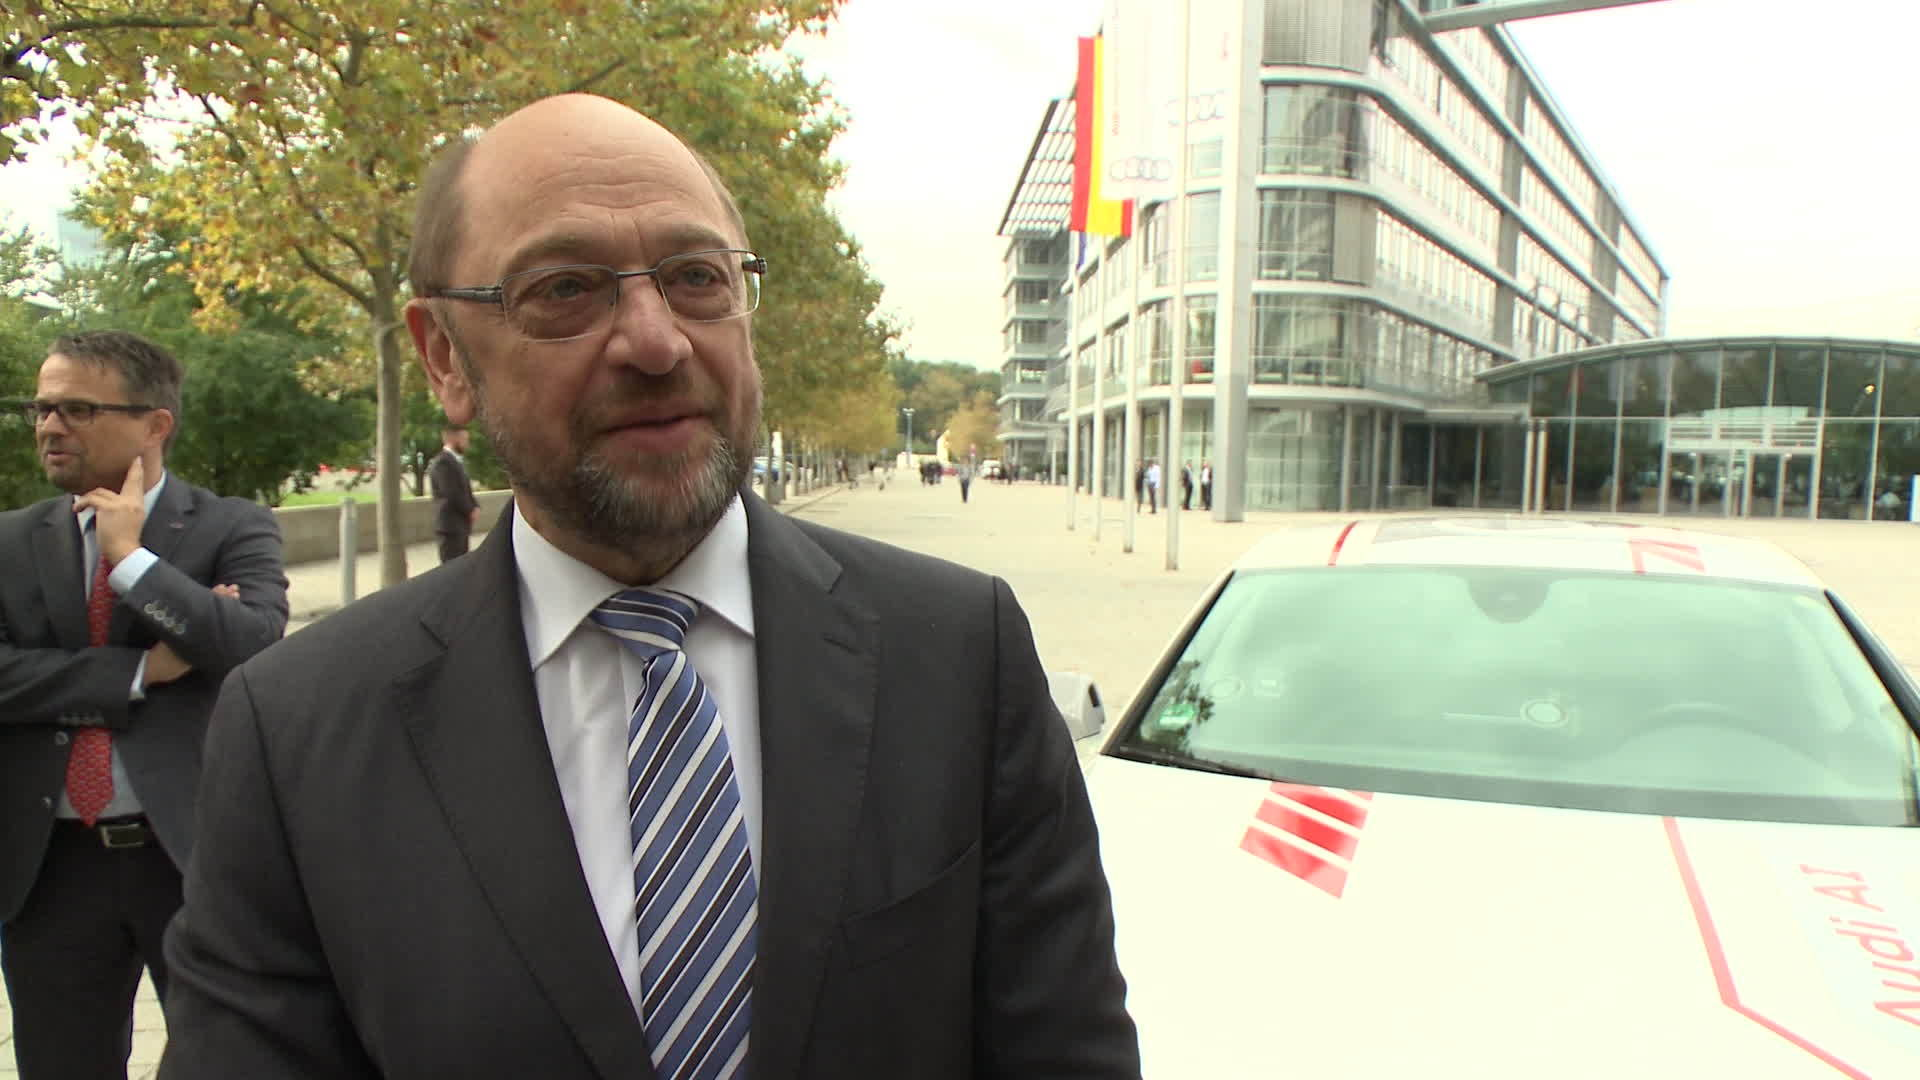 President of the European Parliament Schulz tests piloted Audi